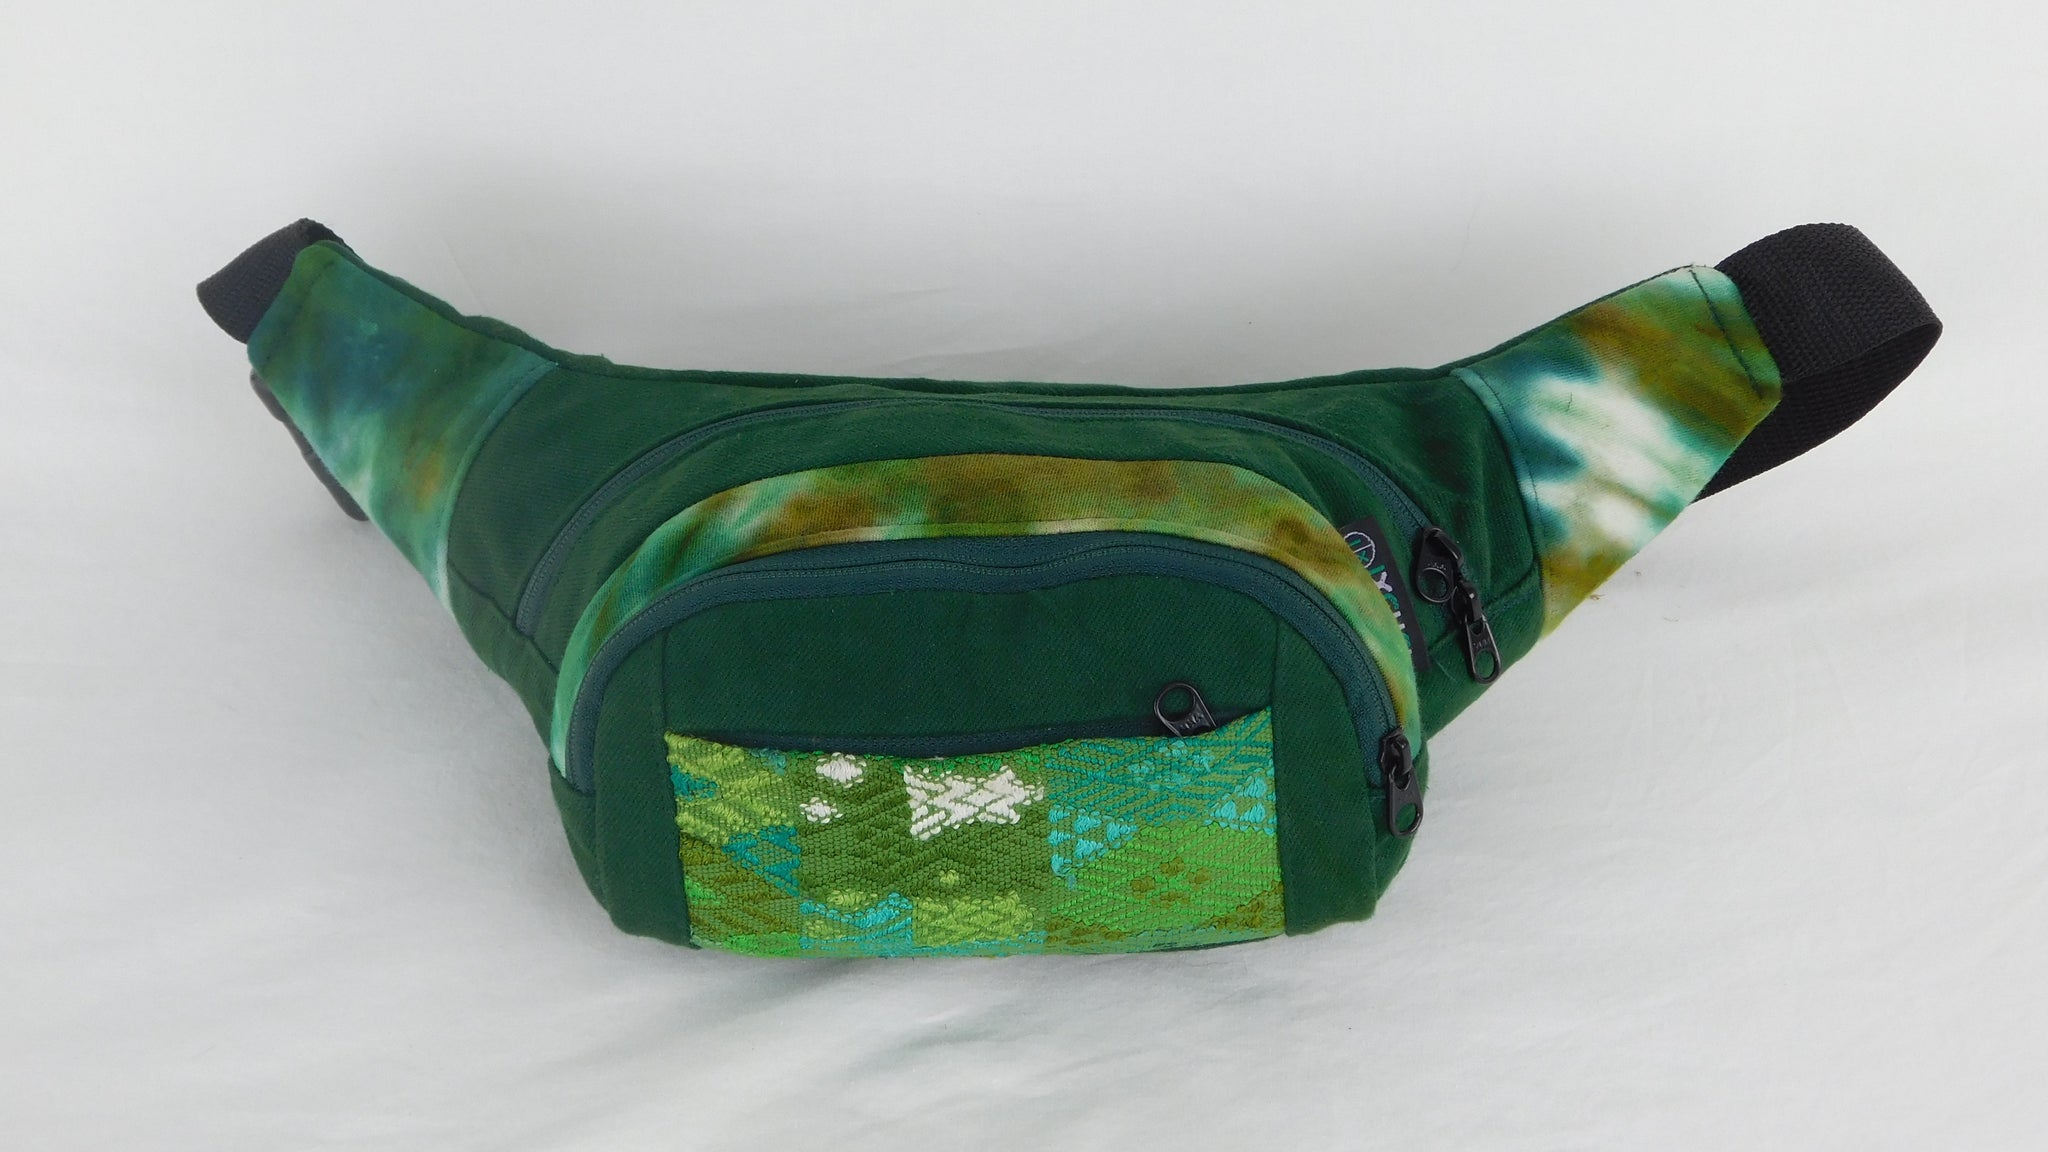 Extra Large 3 Pocket Waist Pack in Tie Dye